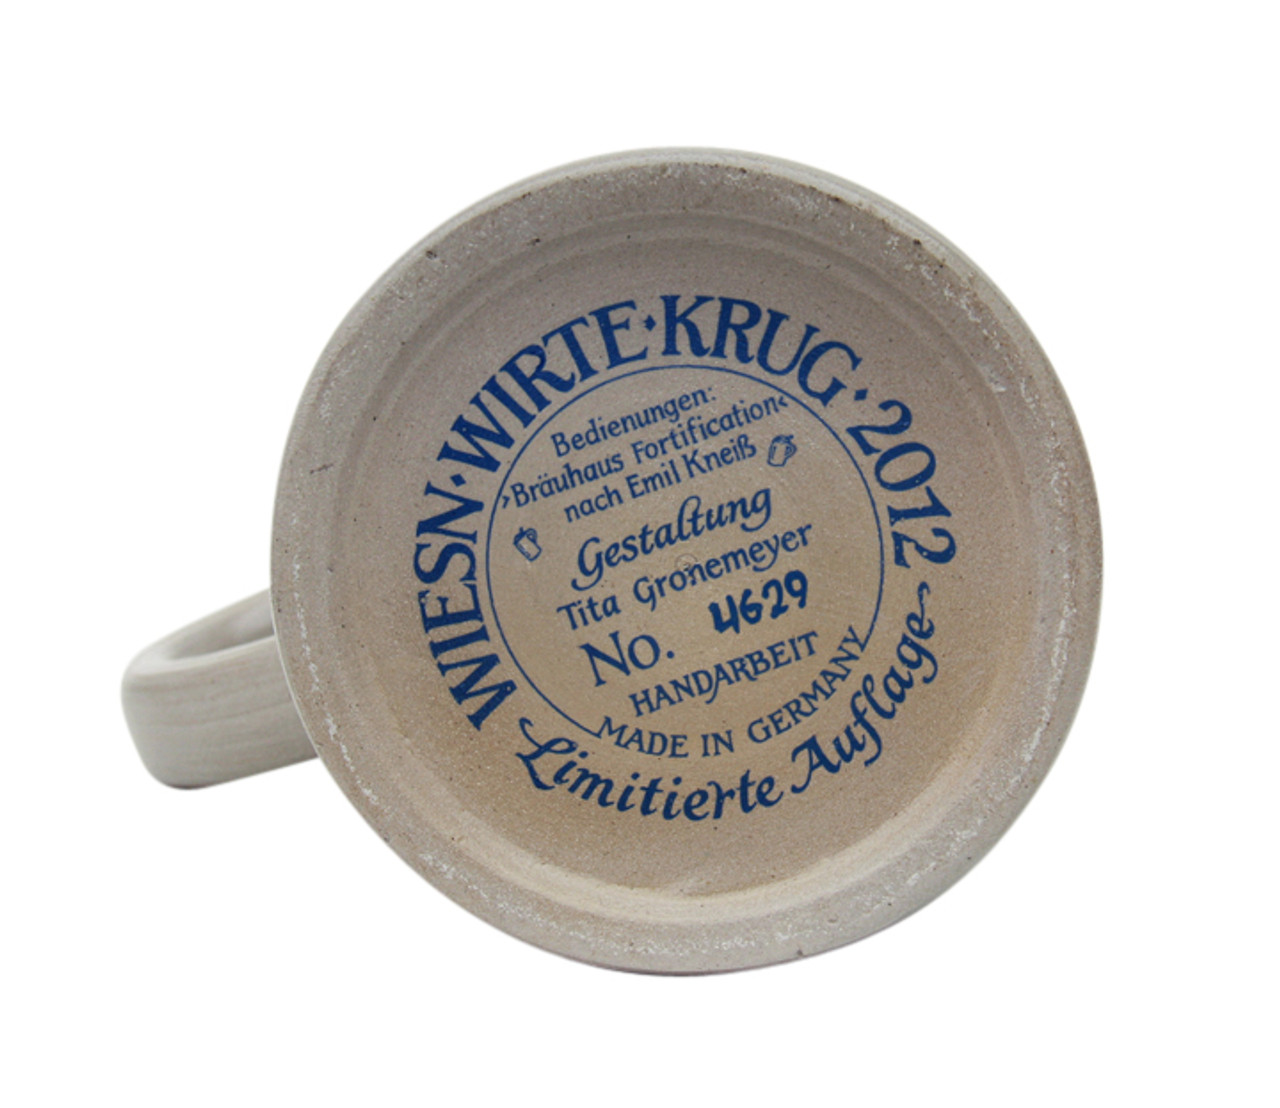 Bottom of Oktoberfest Wirtekrug Beer Mug.